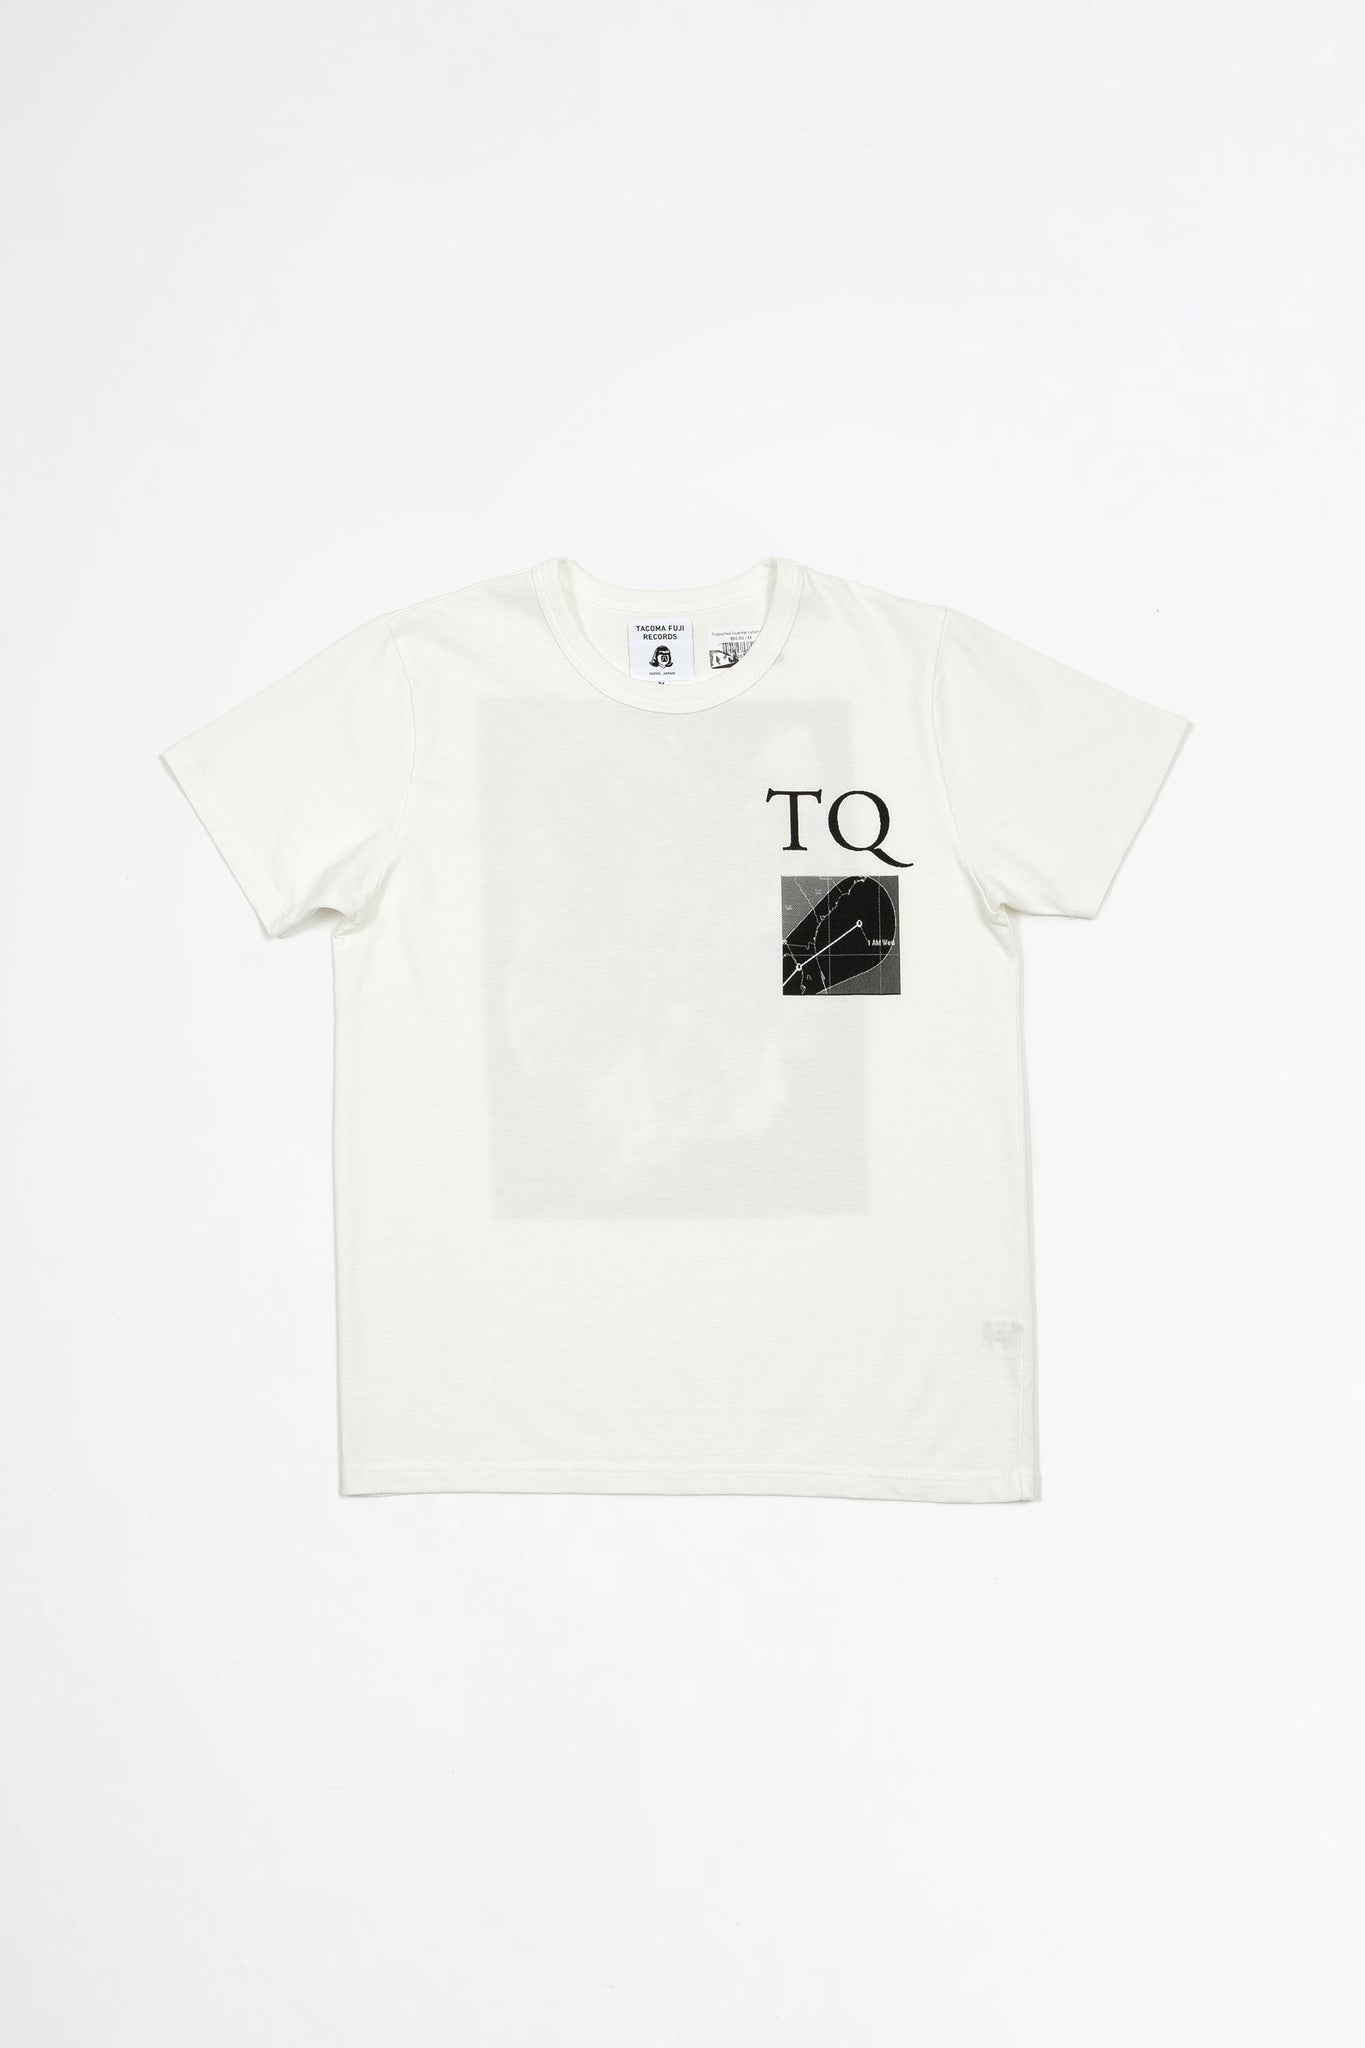 Tropisches Quartett t-shirt white